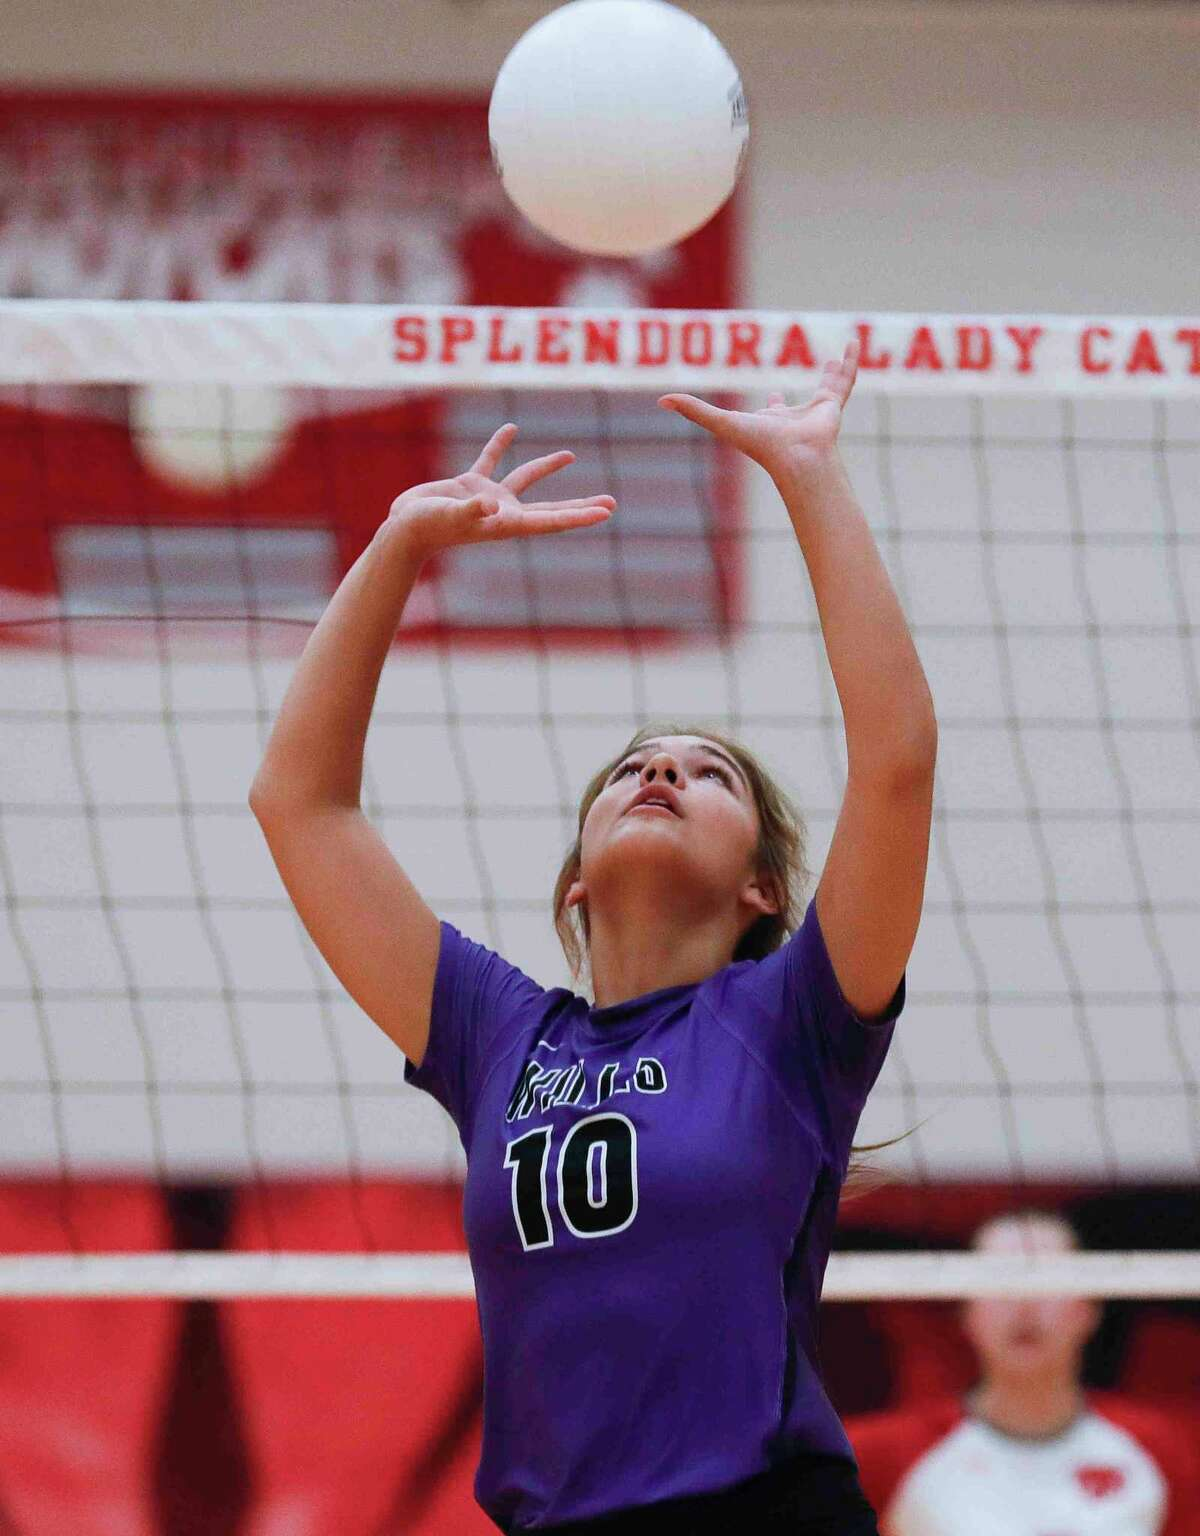 Willis' Savannah Paske (10) sets the ball in the first set during a non-district high school volleyball match at Splendora High School, Friday, Aug. 20, 2021, in Splendora.